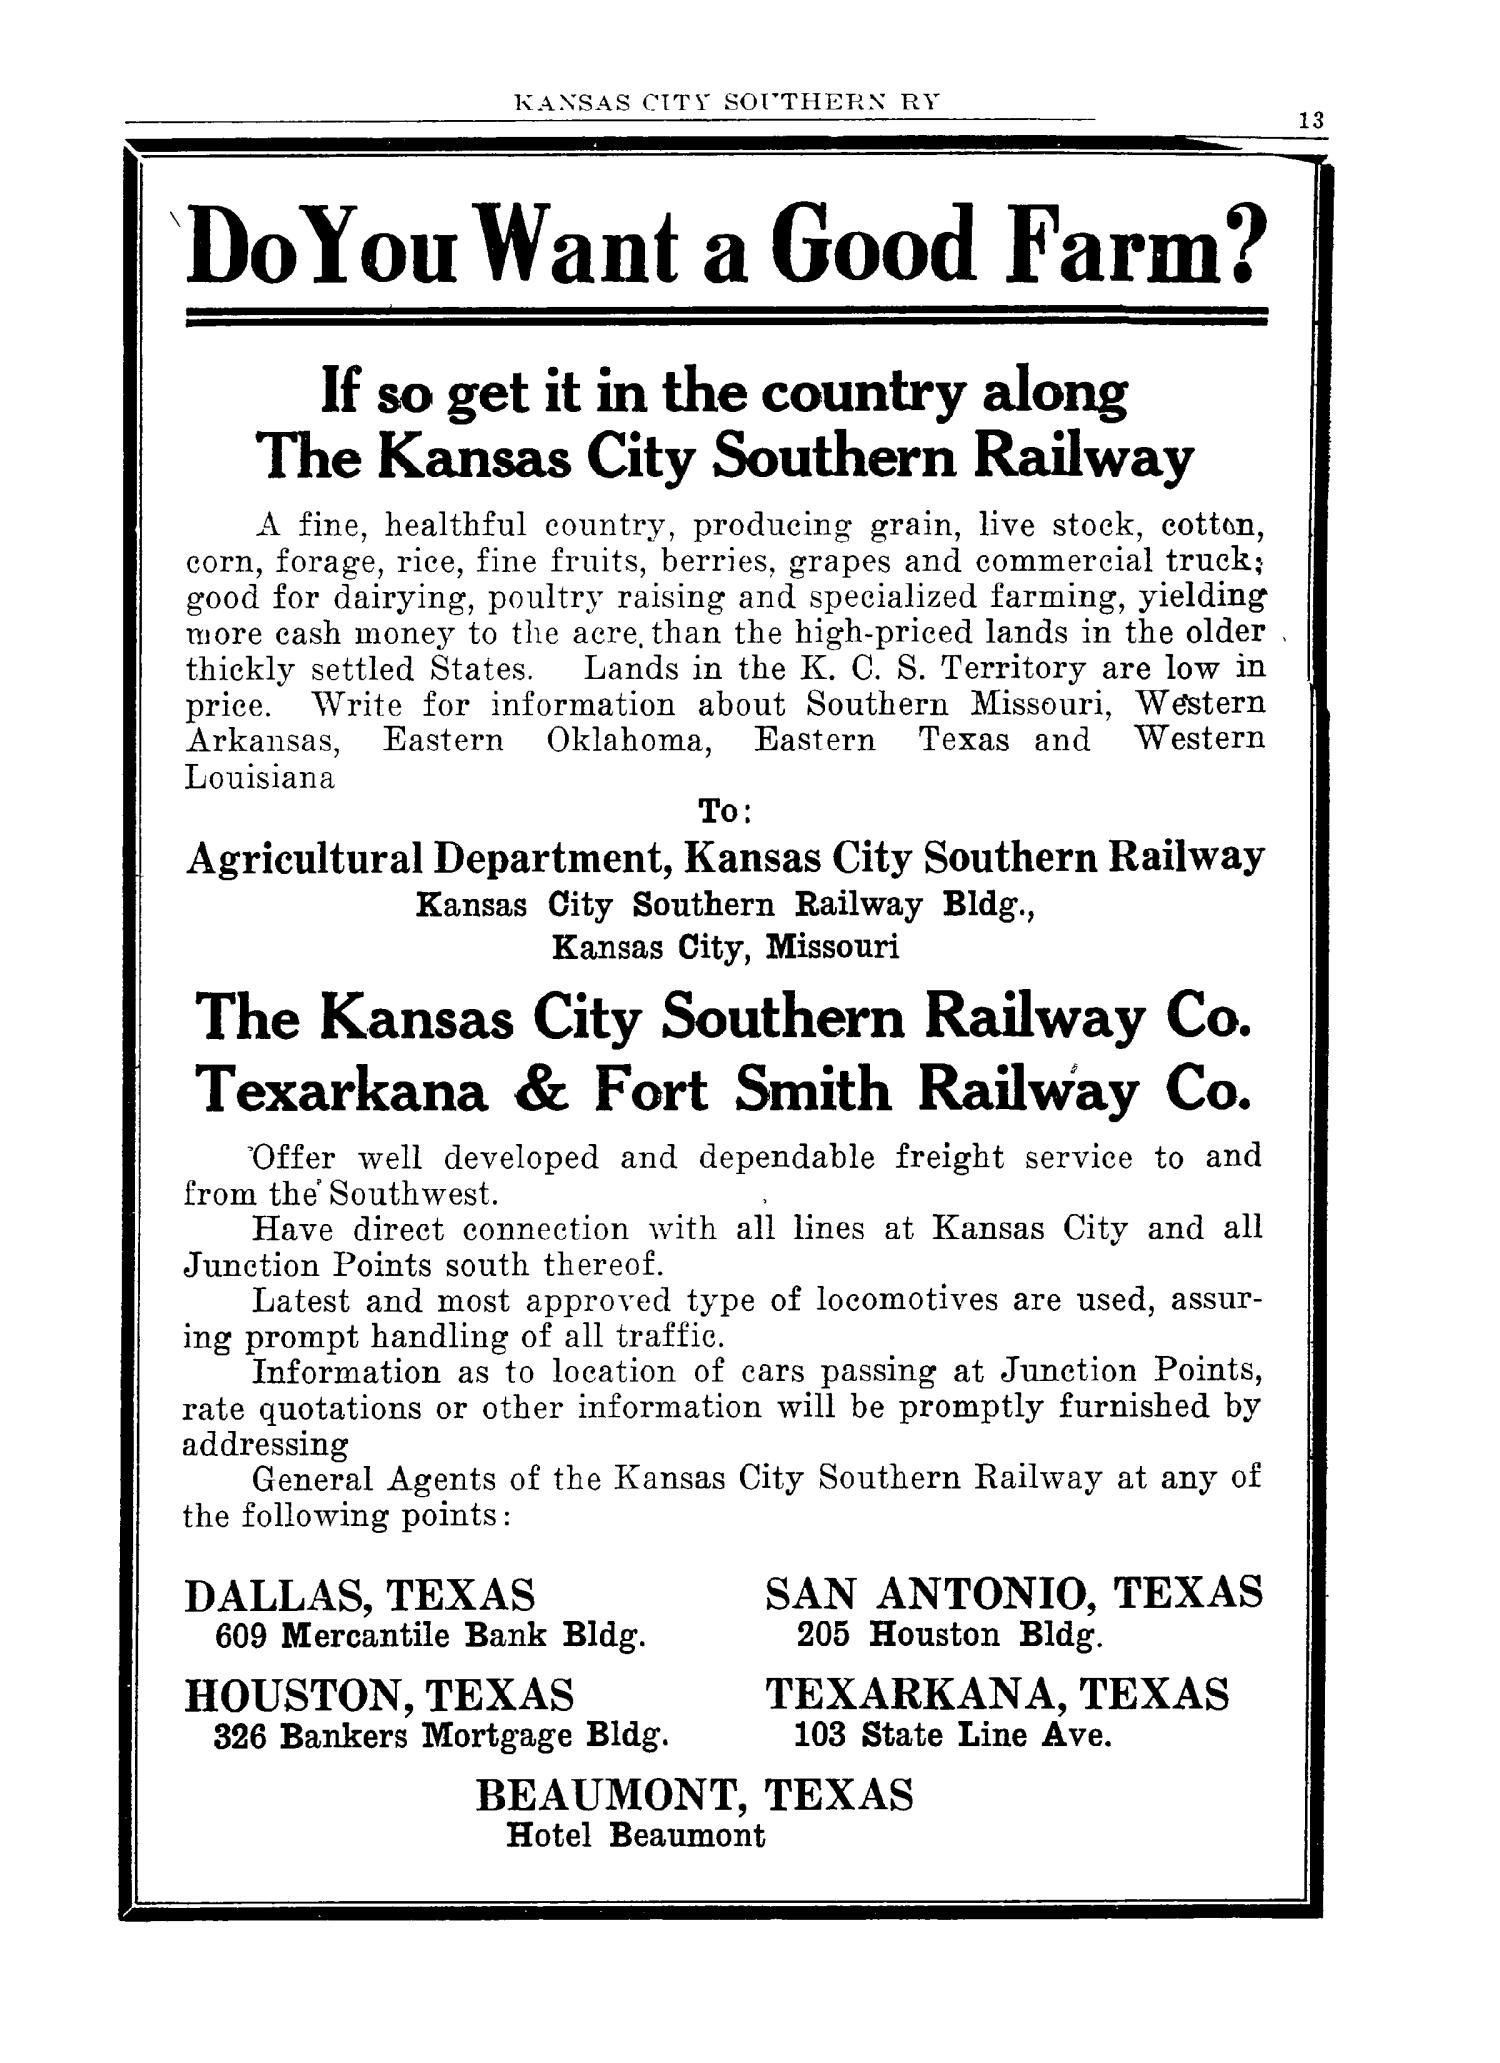 The 1928 Texas Almanac and State Industrial Guide                                                                                                      13